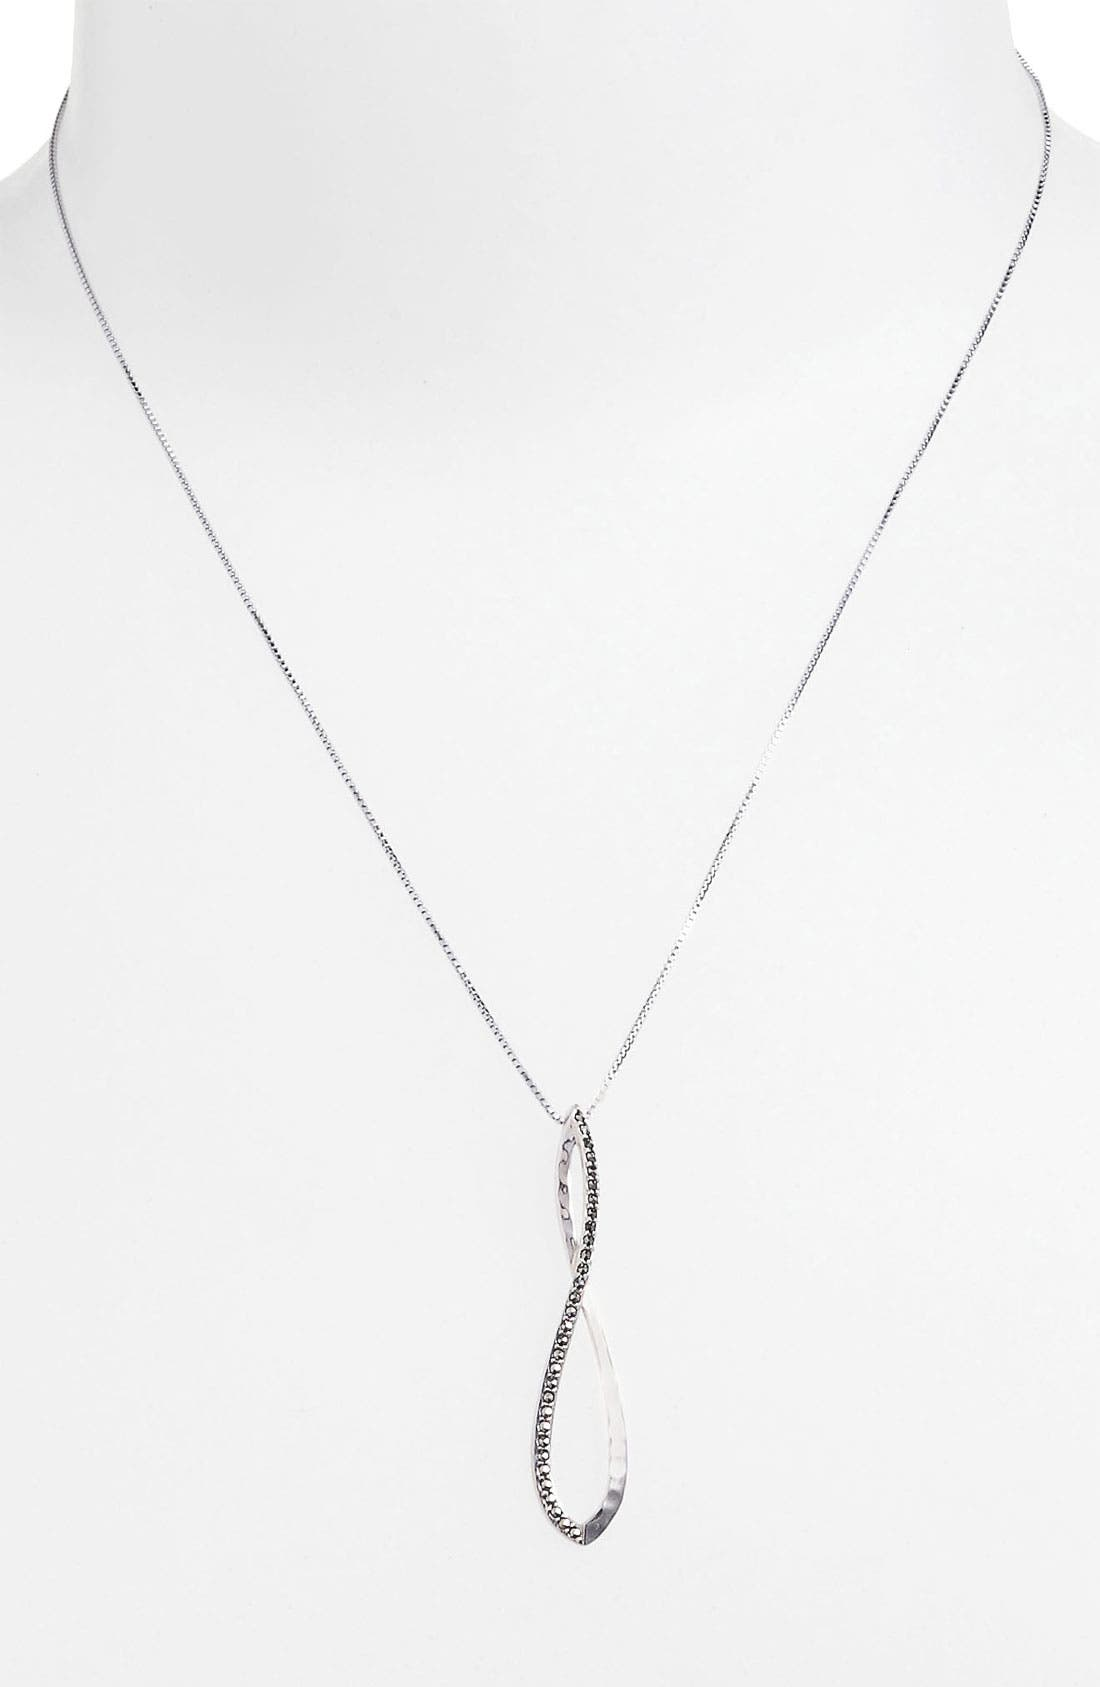 Alternate Image 1 Selected - Judith Jack 'Fluidity' Pendant Necklace